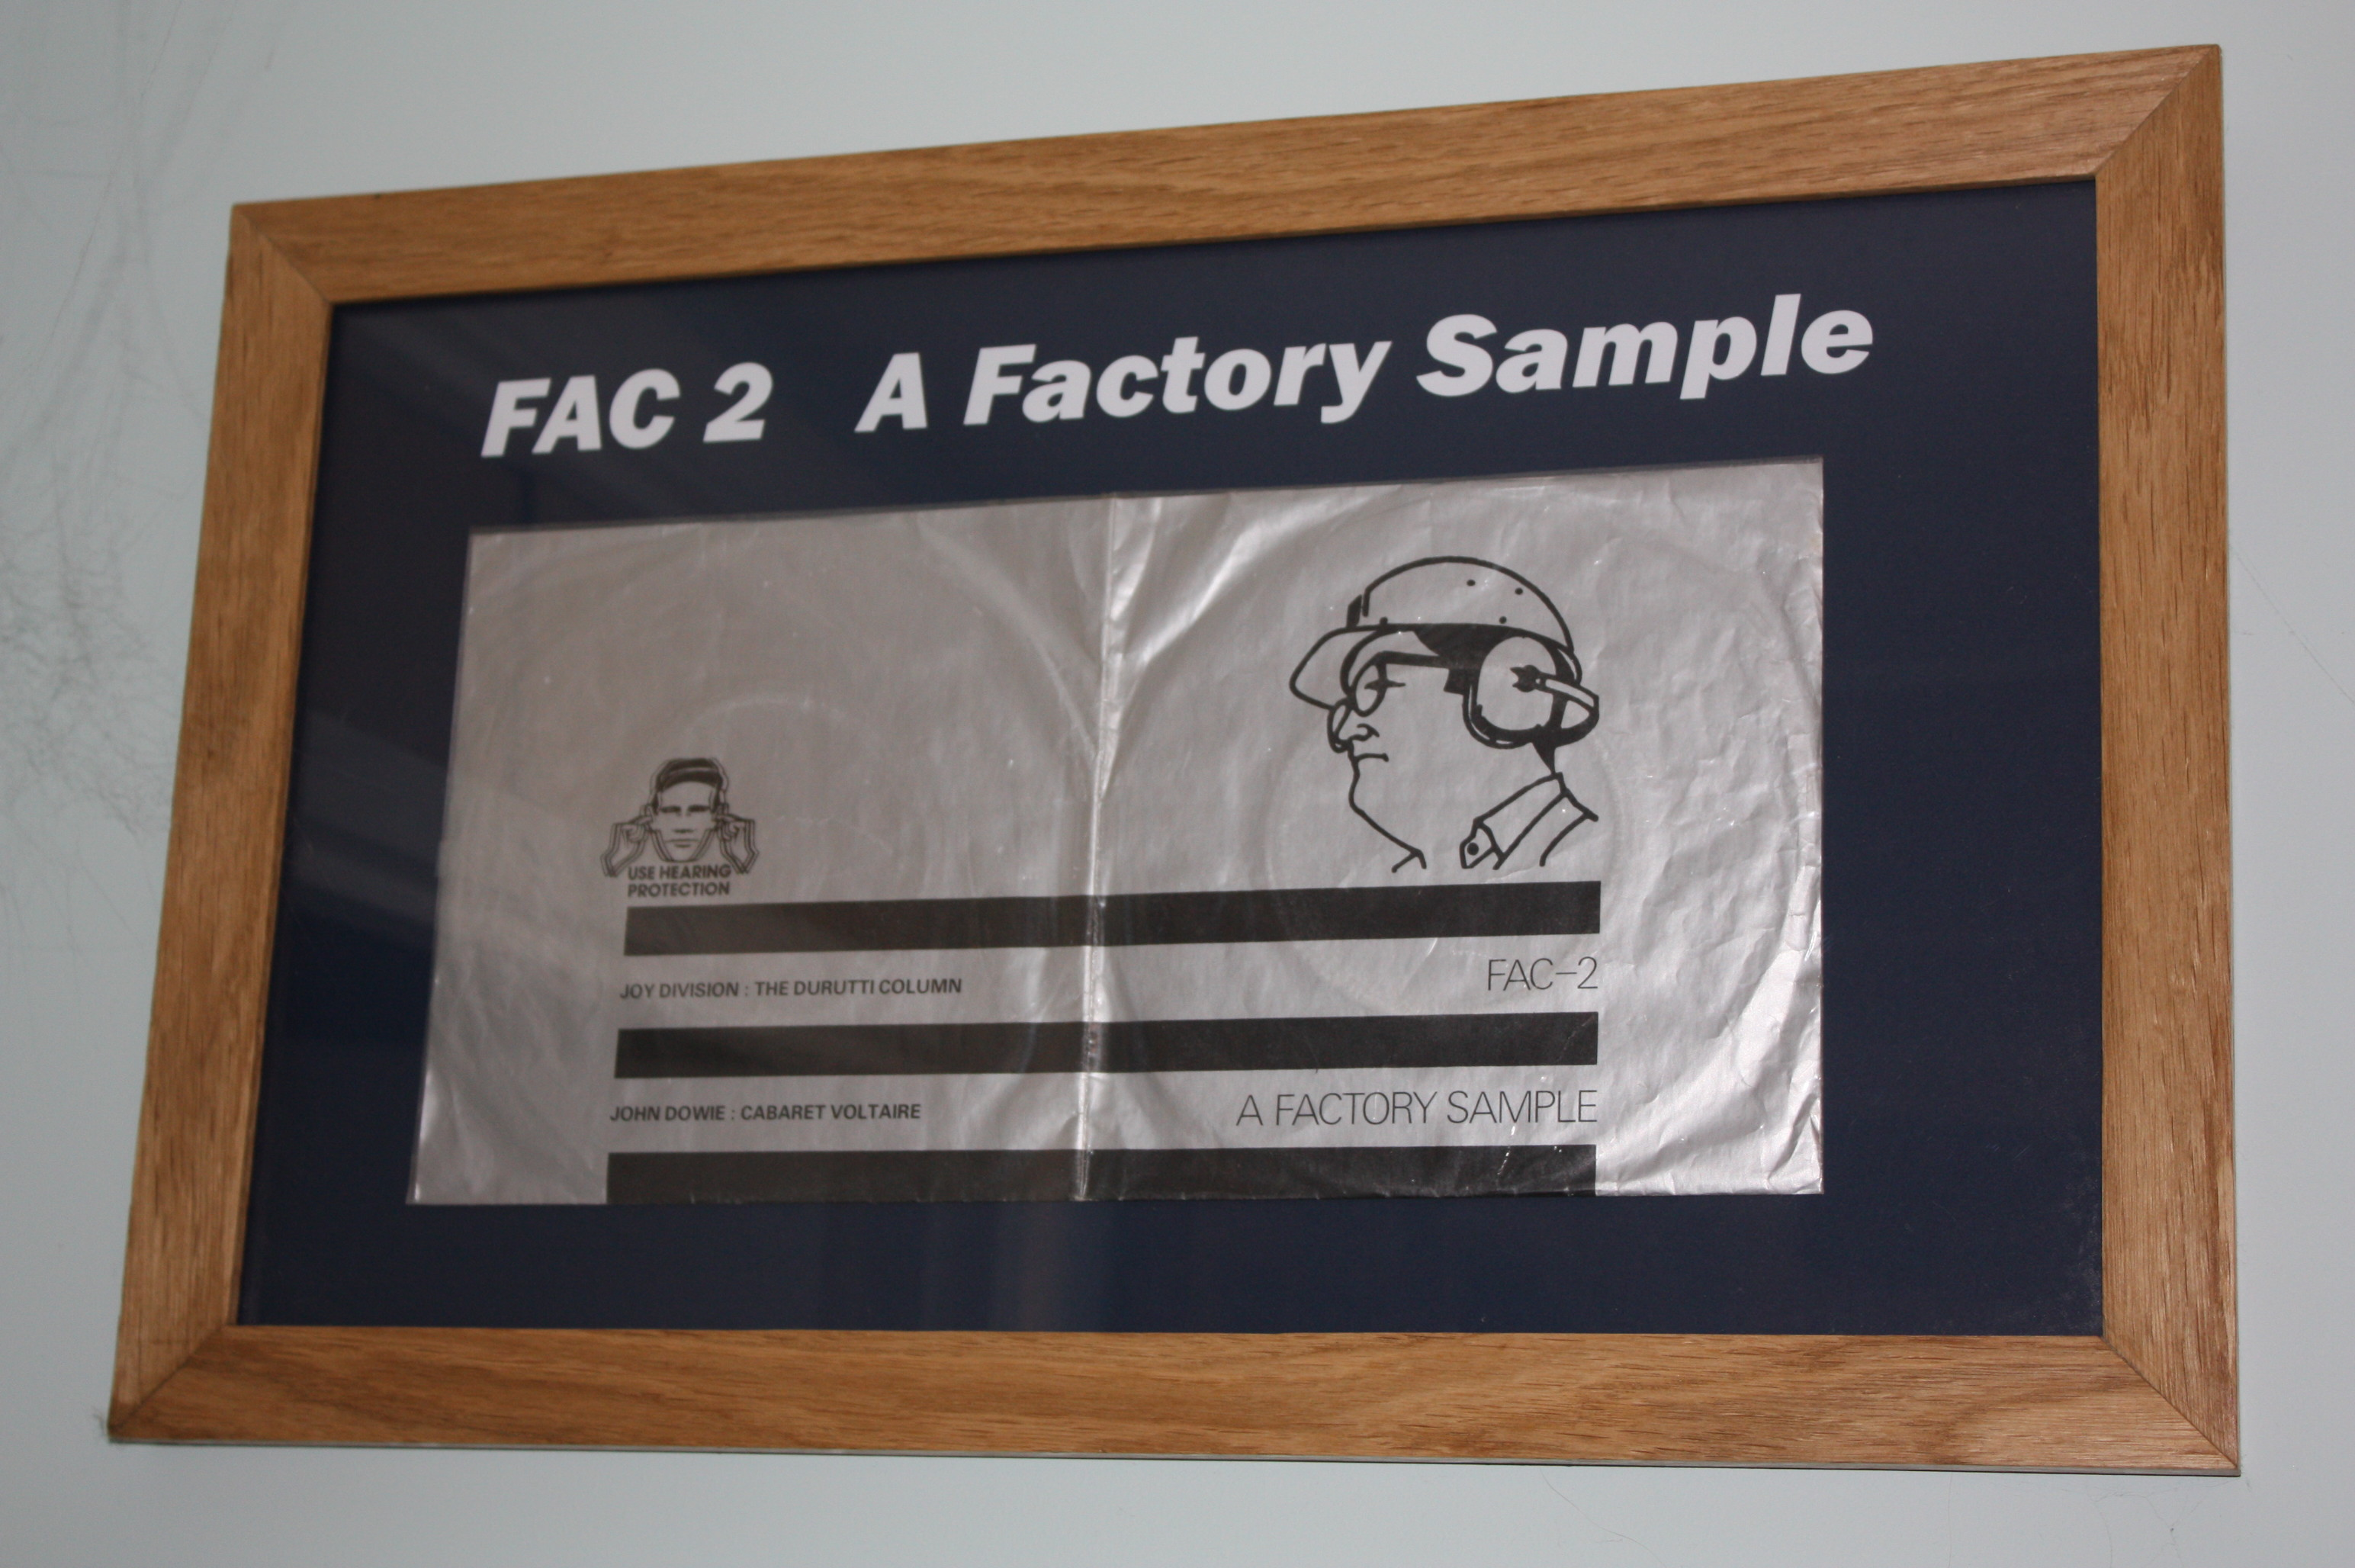 A Factory Sample